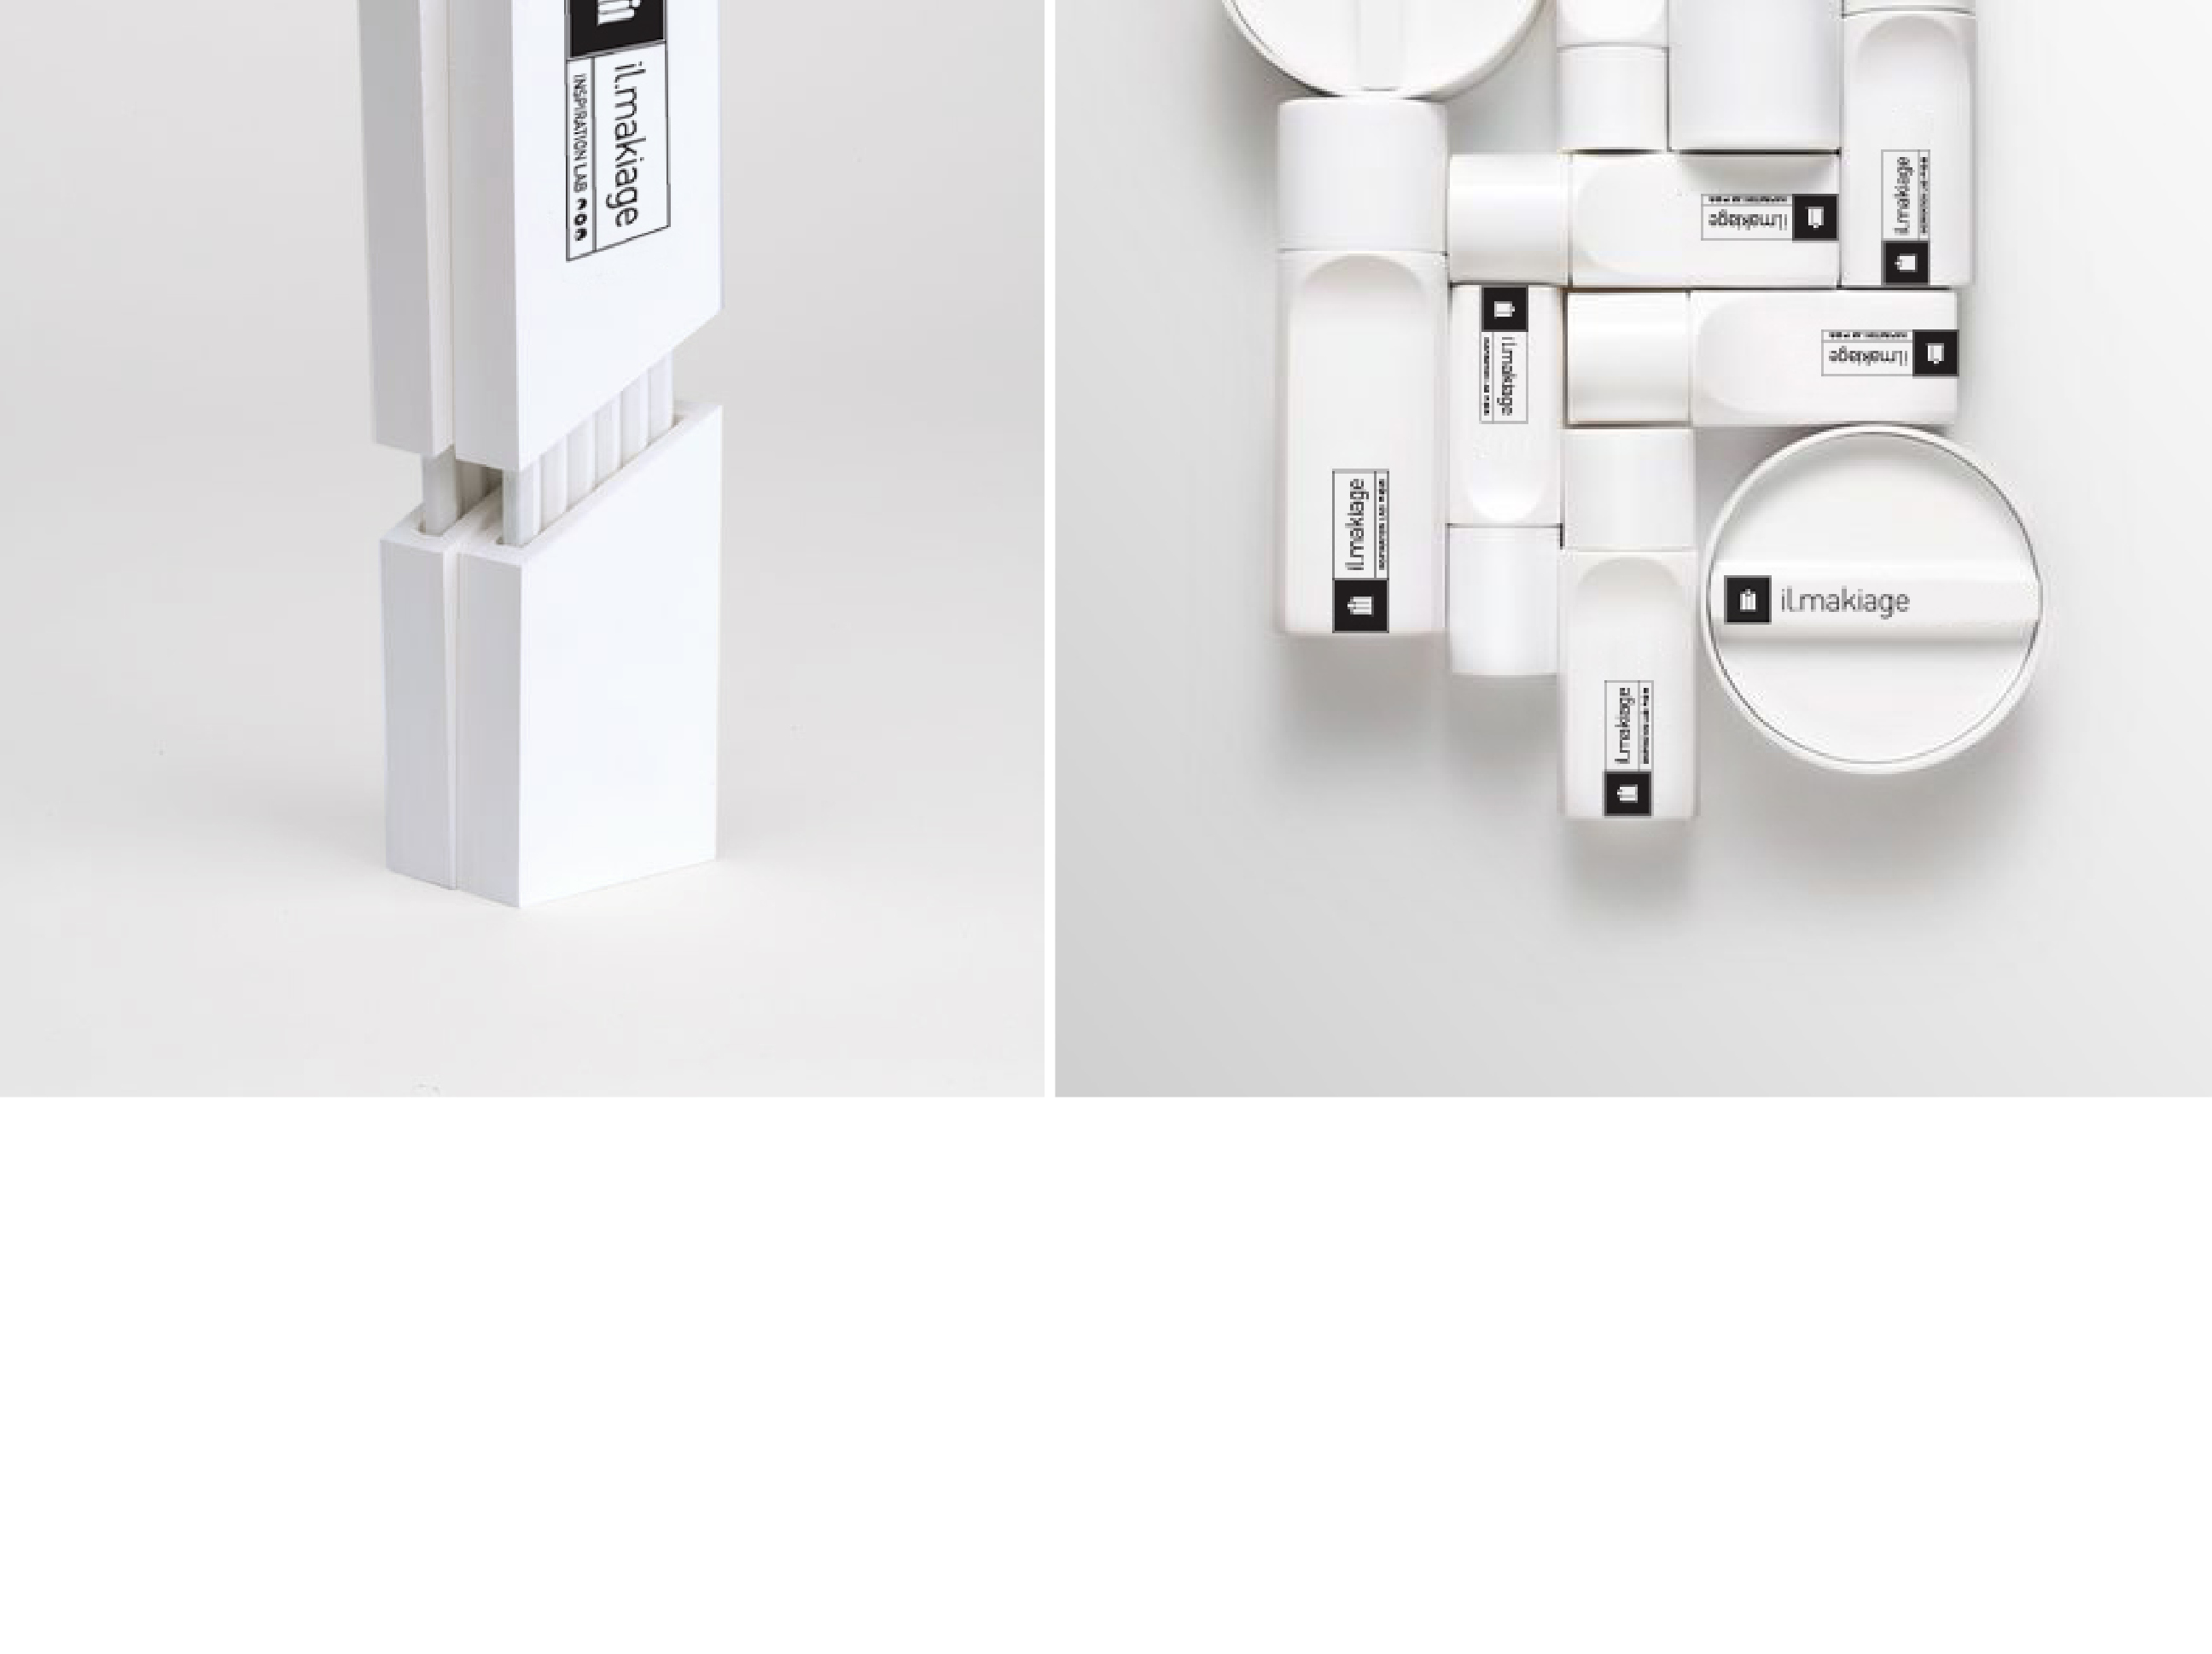 il-makiage-packagings18